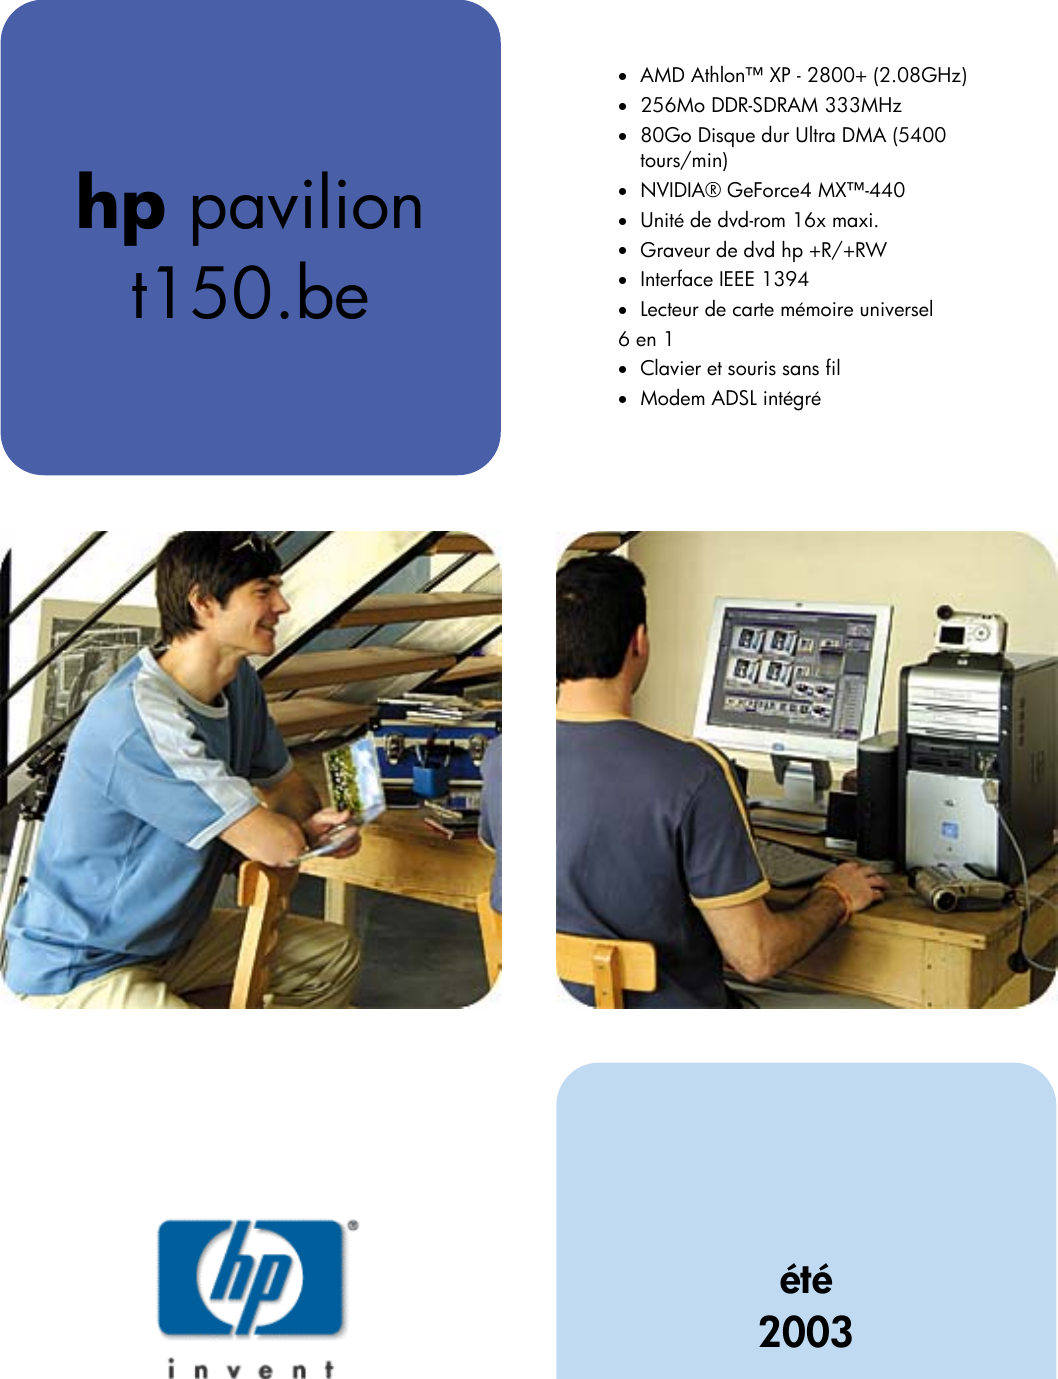 HP T150.be_ds_fre Pavilion Desktop PC (French) T150.be Product Datasheet  And Specifications Bph08291